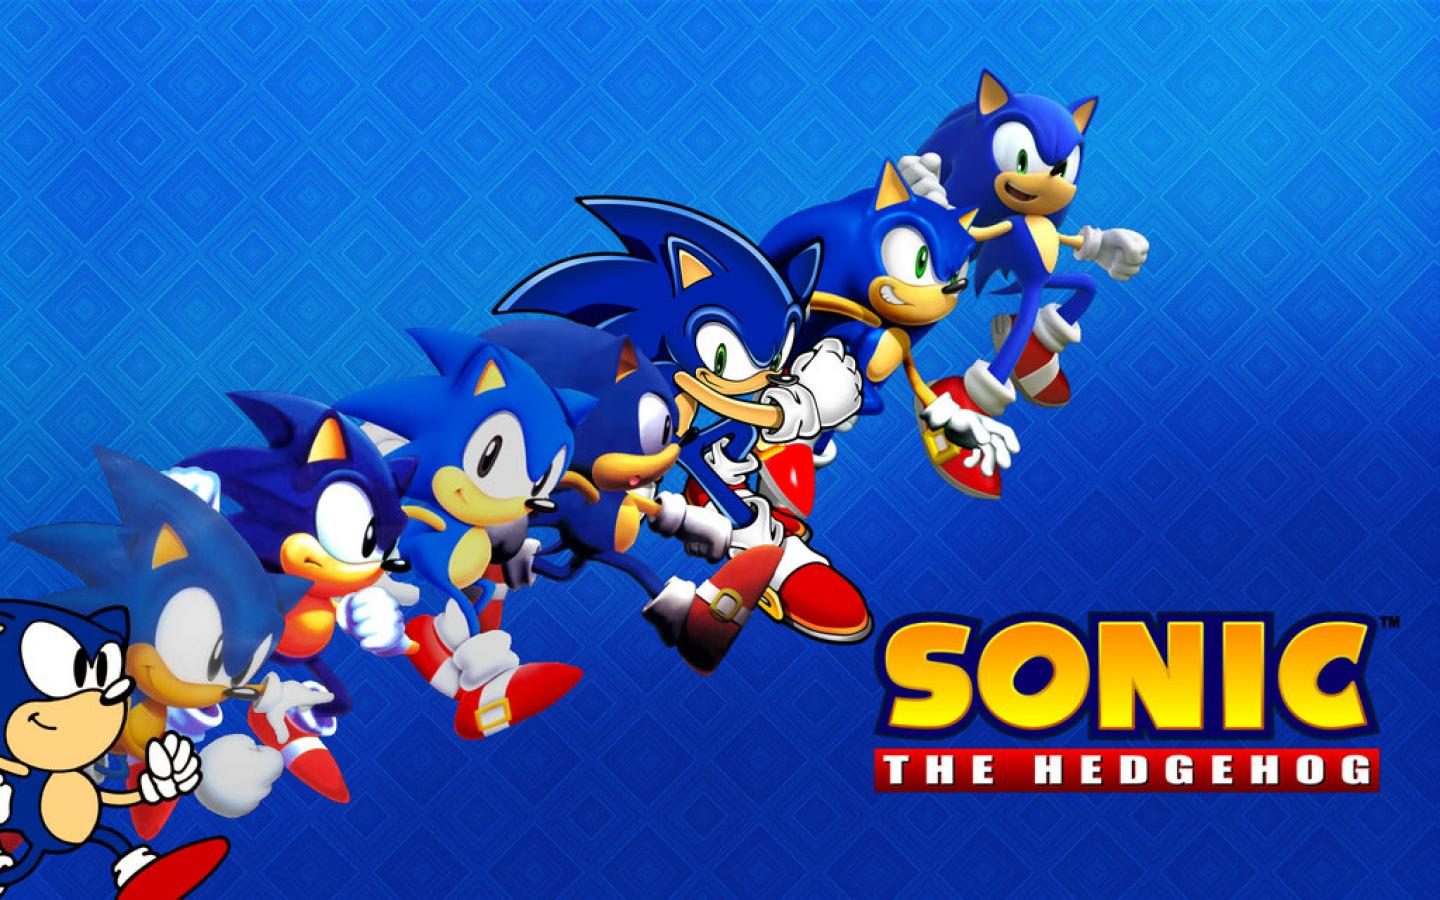 Sonic The Hedgehog Wallpaper 1920x1080 Posted By Christopher Simpson